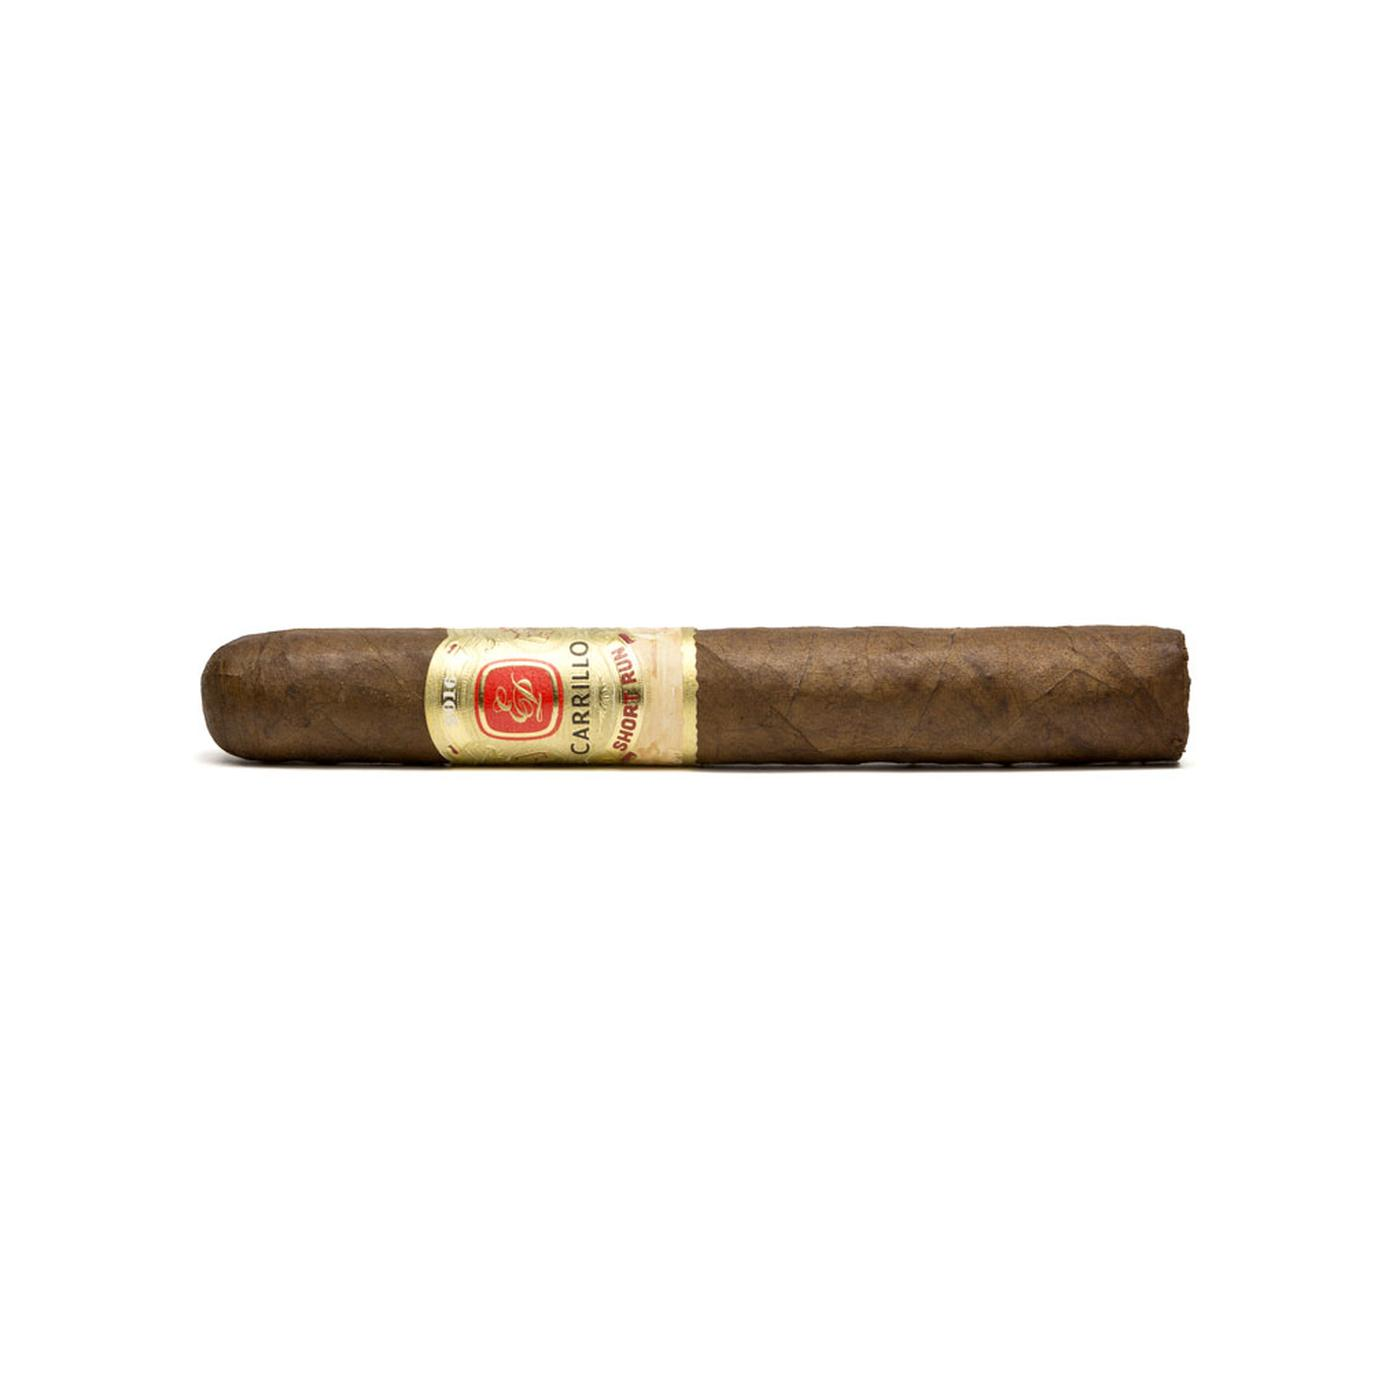 E. P. Carrillo Short Run